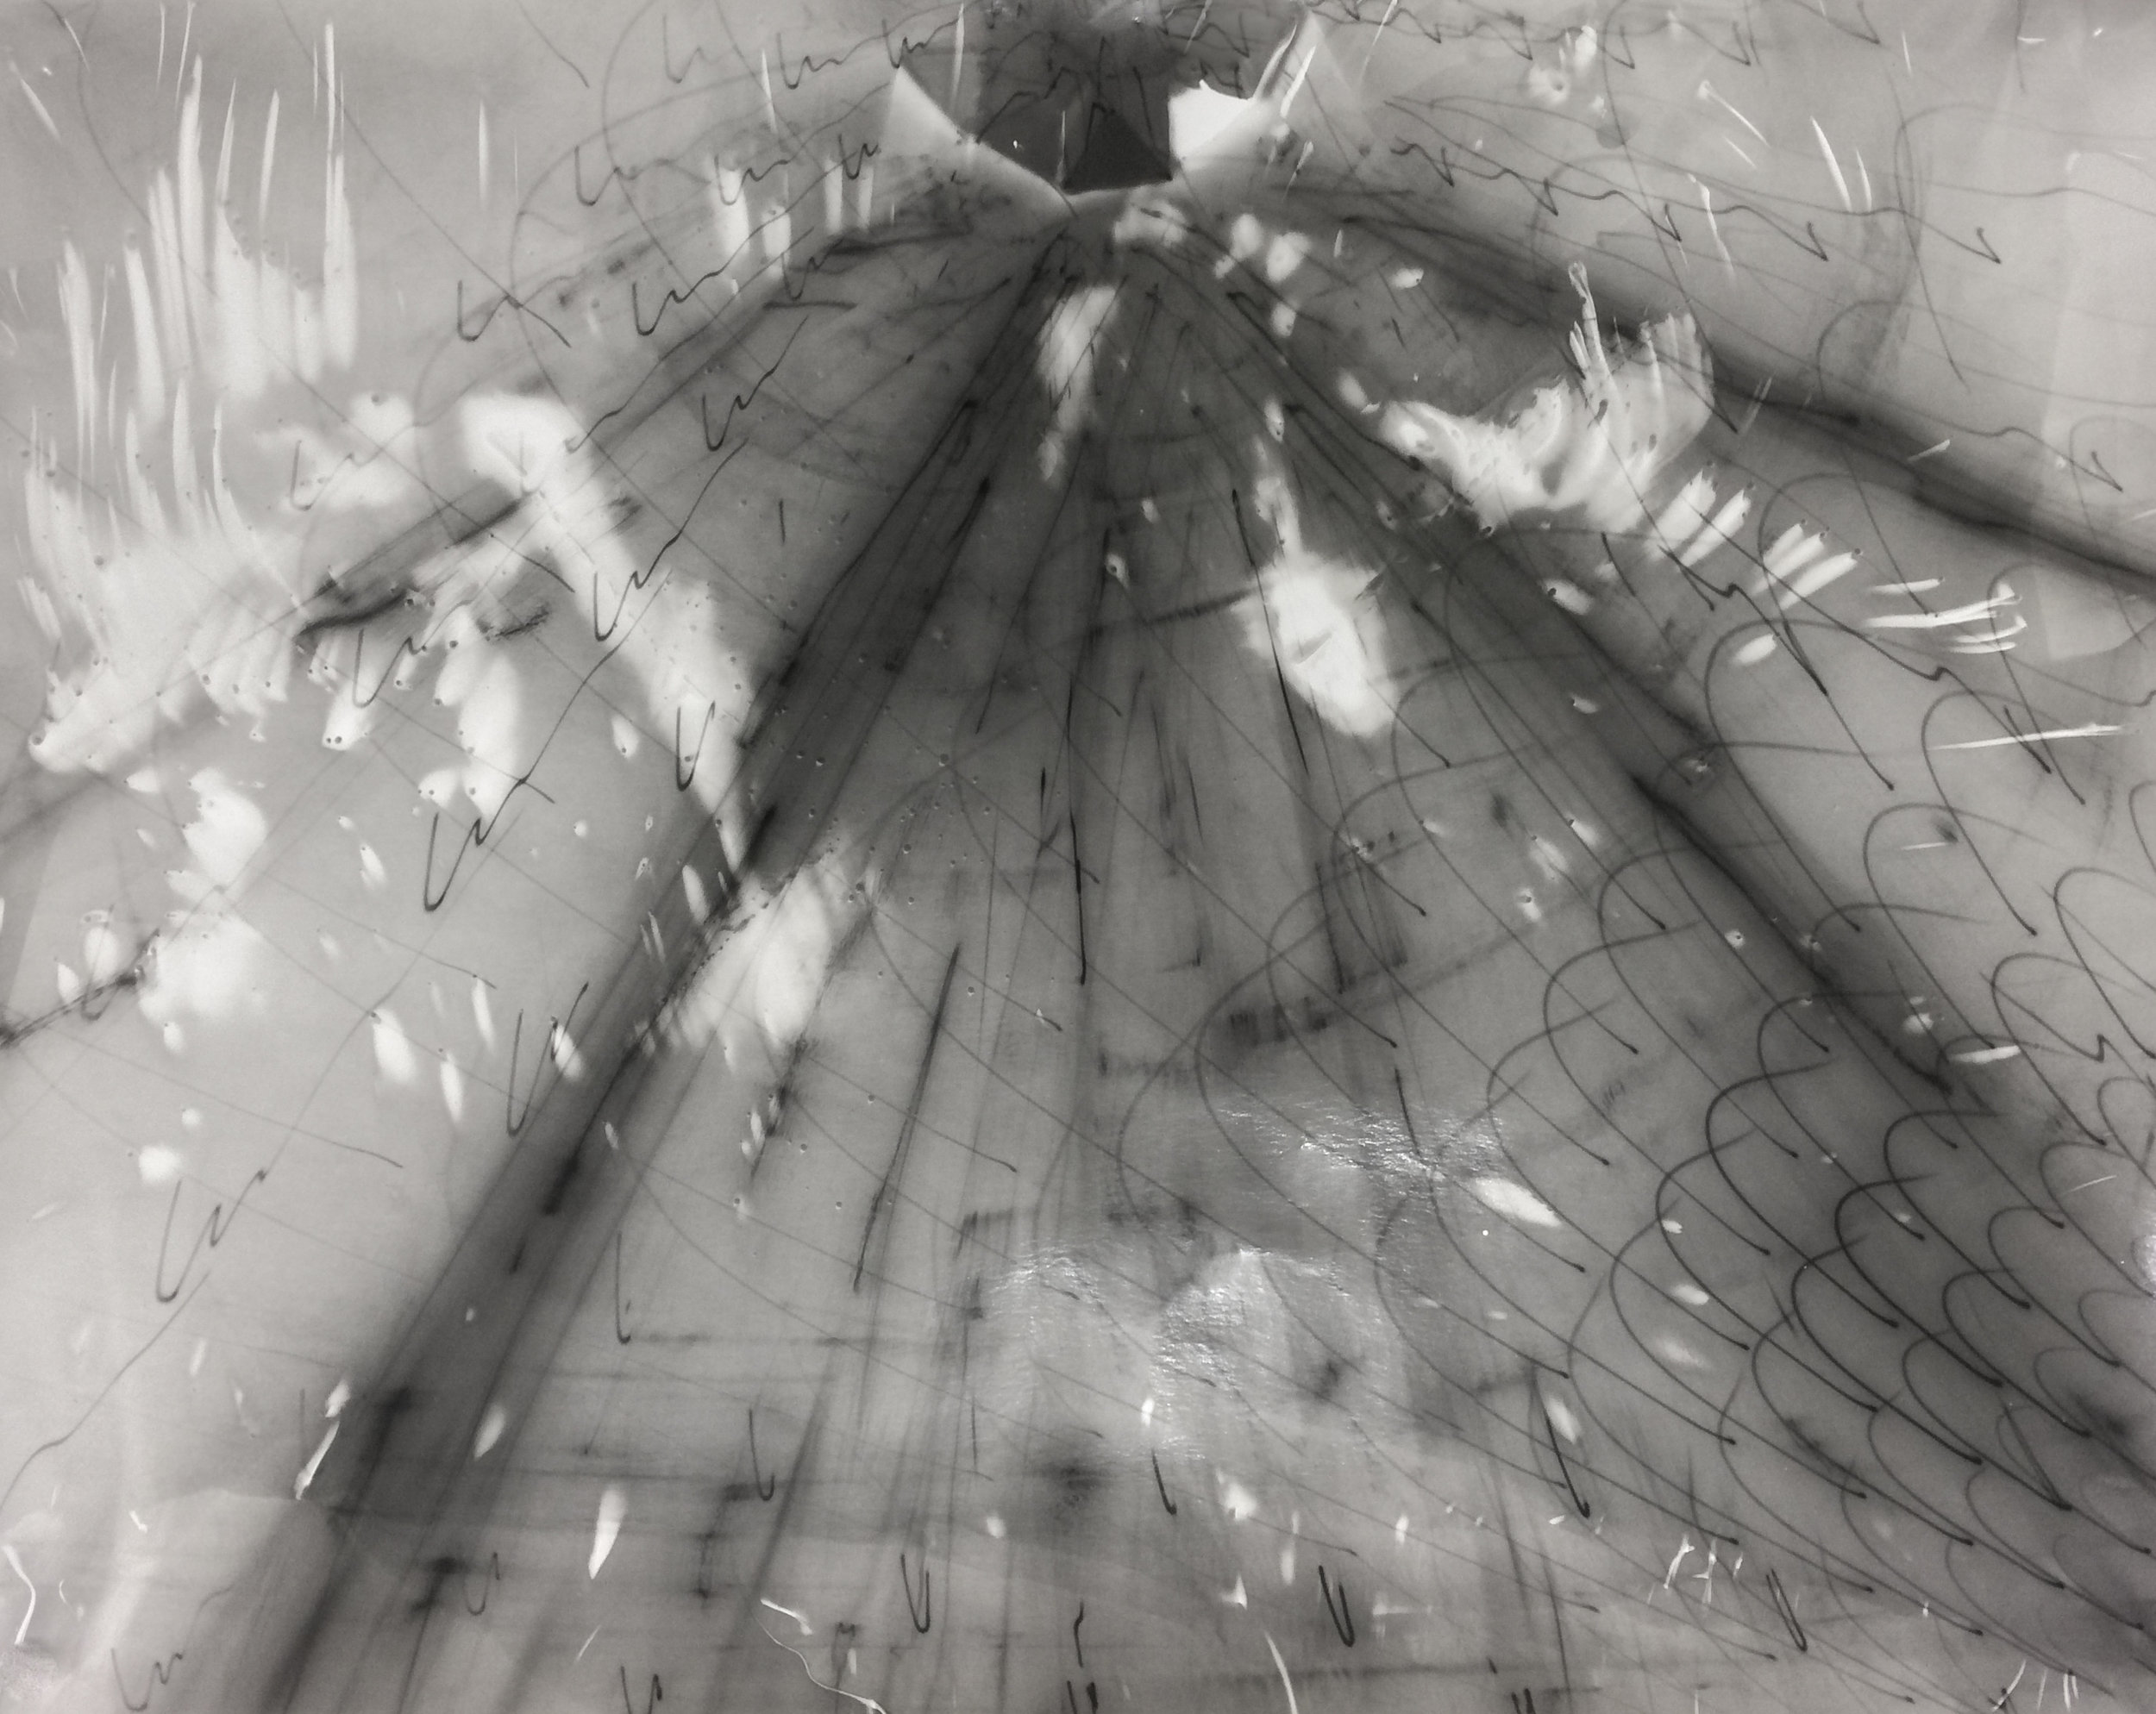 Untitled #1, Electromagnetogram on photo paper, 40 x 60 in. (101.6 x 152.4 cm)